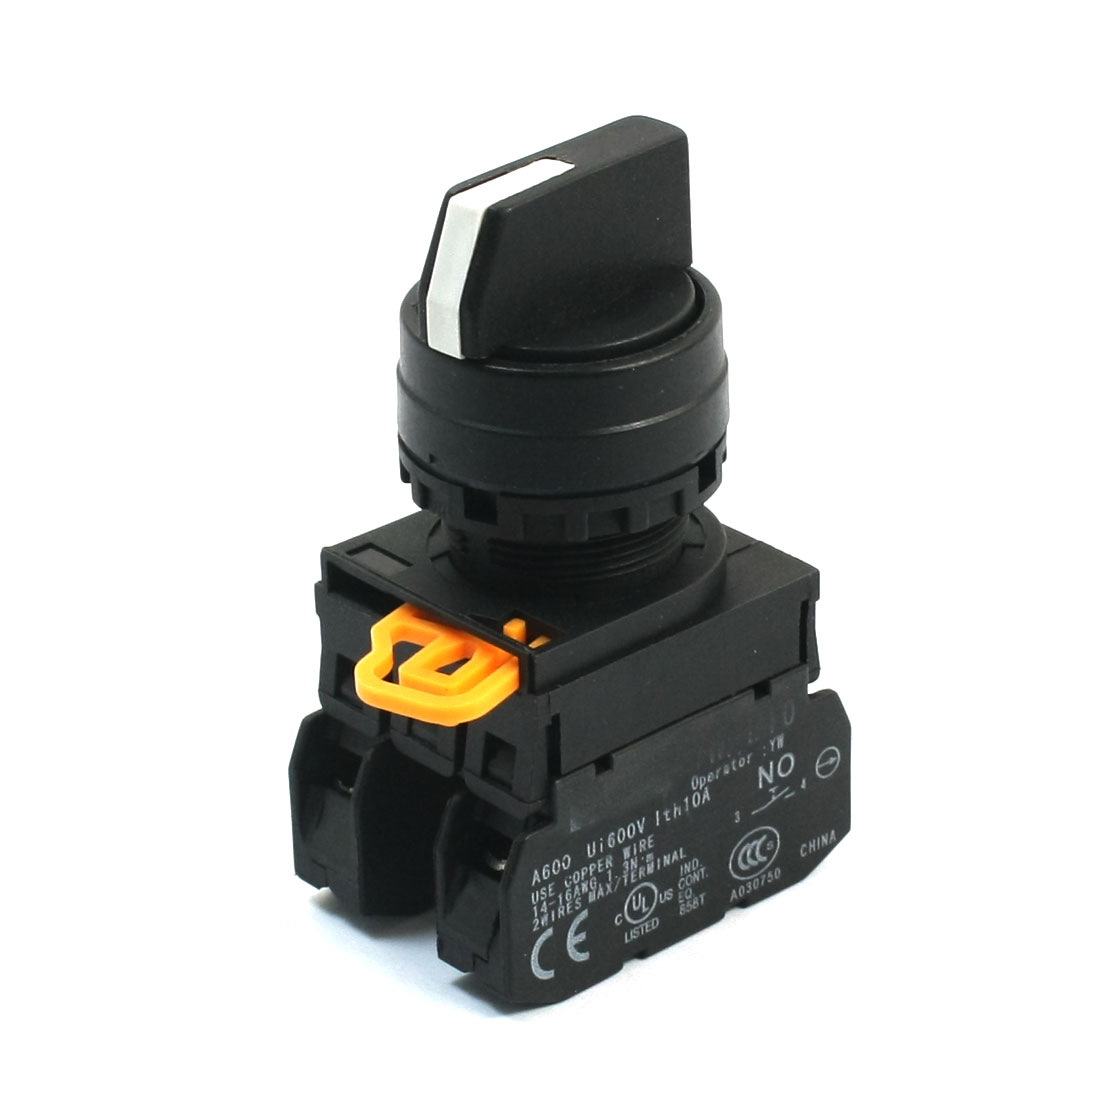 600V 10A 2NO 4 Screw Terminal 3 Position Selector Locking Rotary Switch